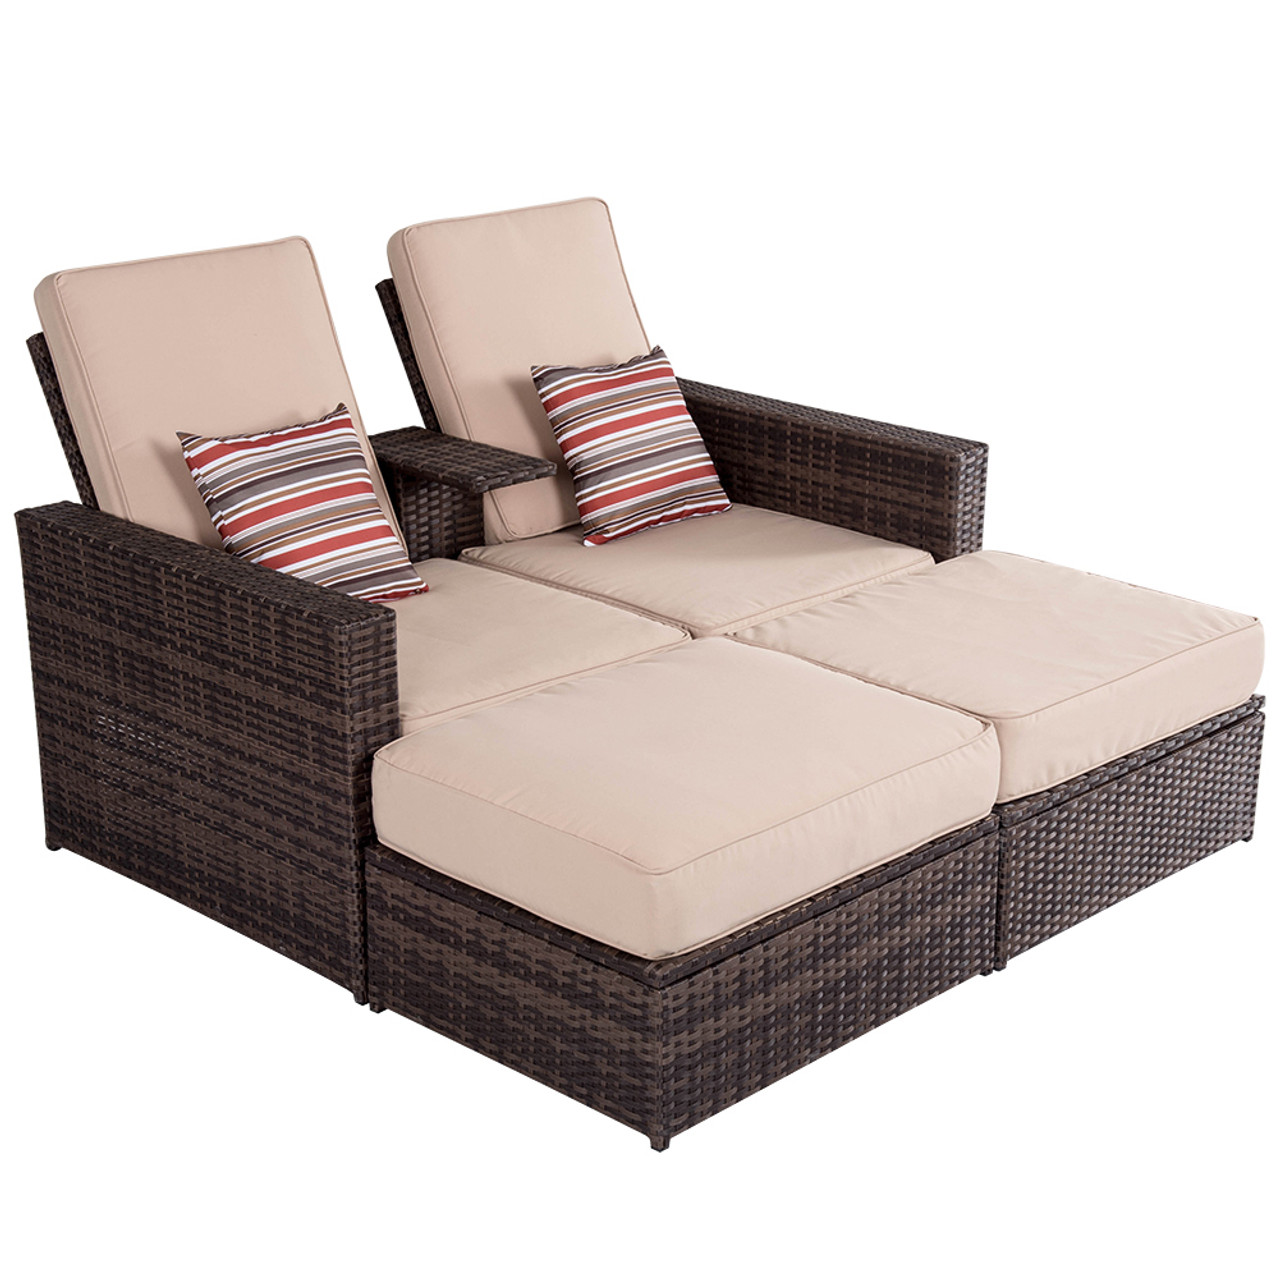 p store cocoa about seater wicker all winward sofa loveseat